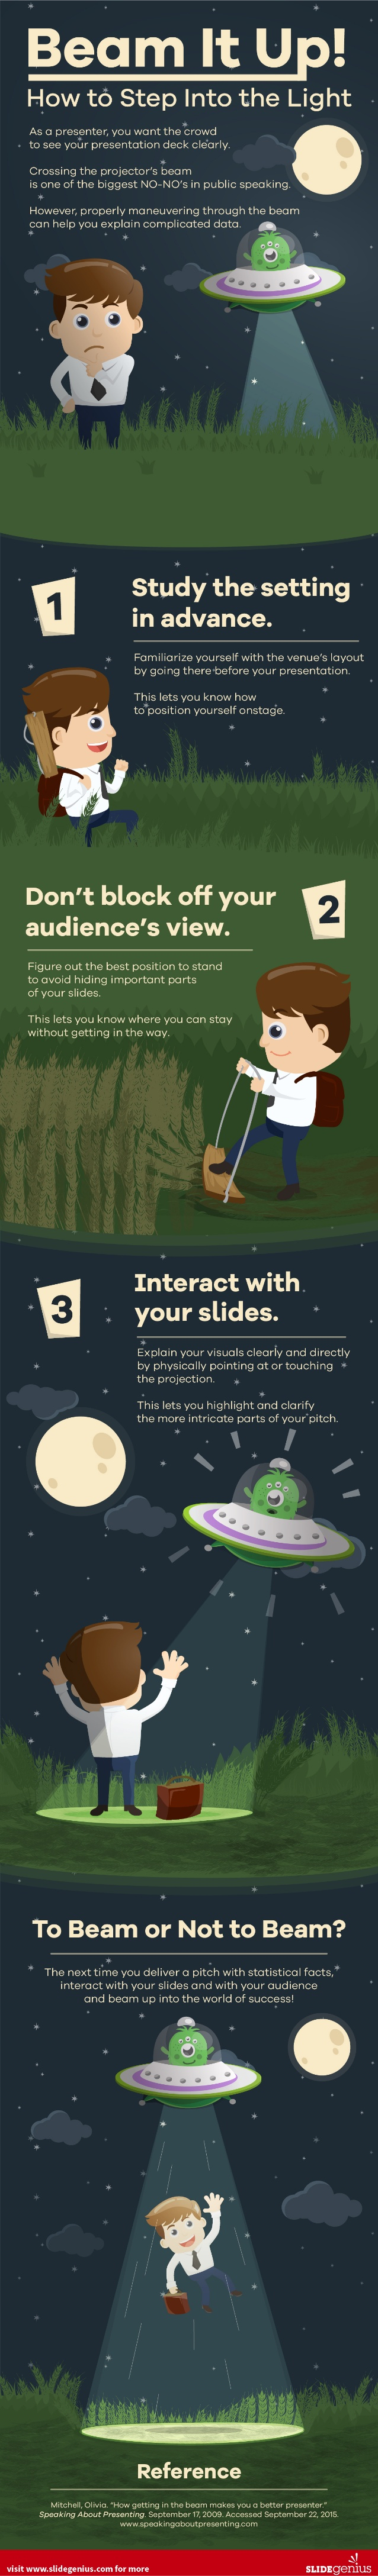 How Stepping Into the Beam Can Help Your Presentation